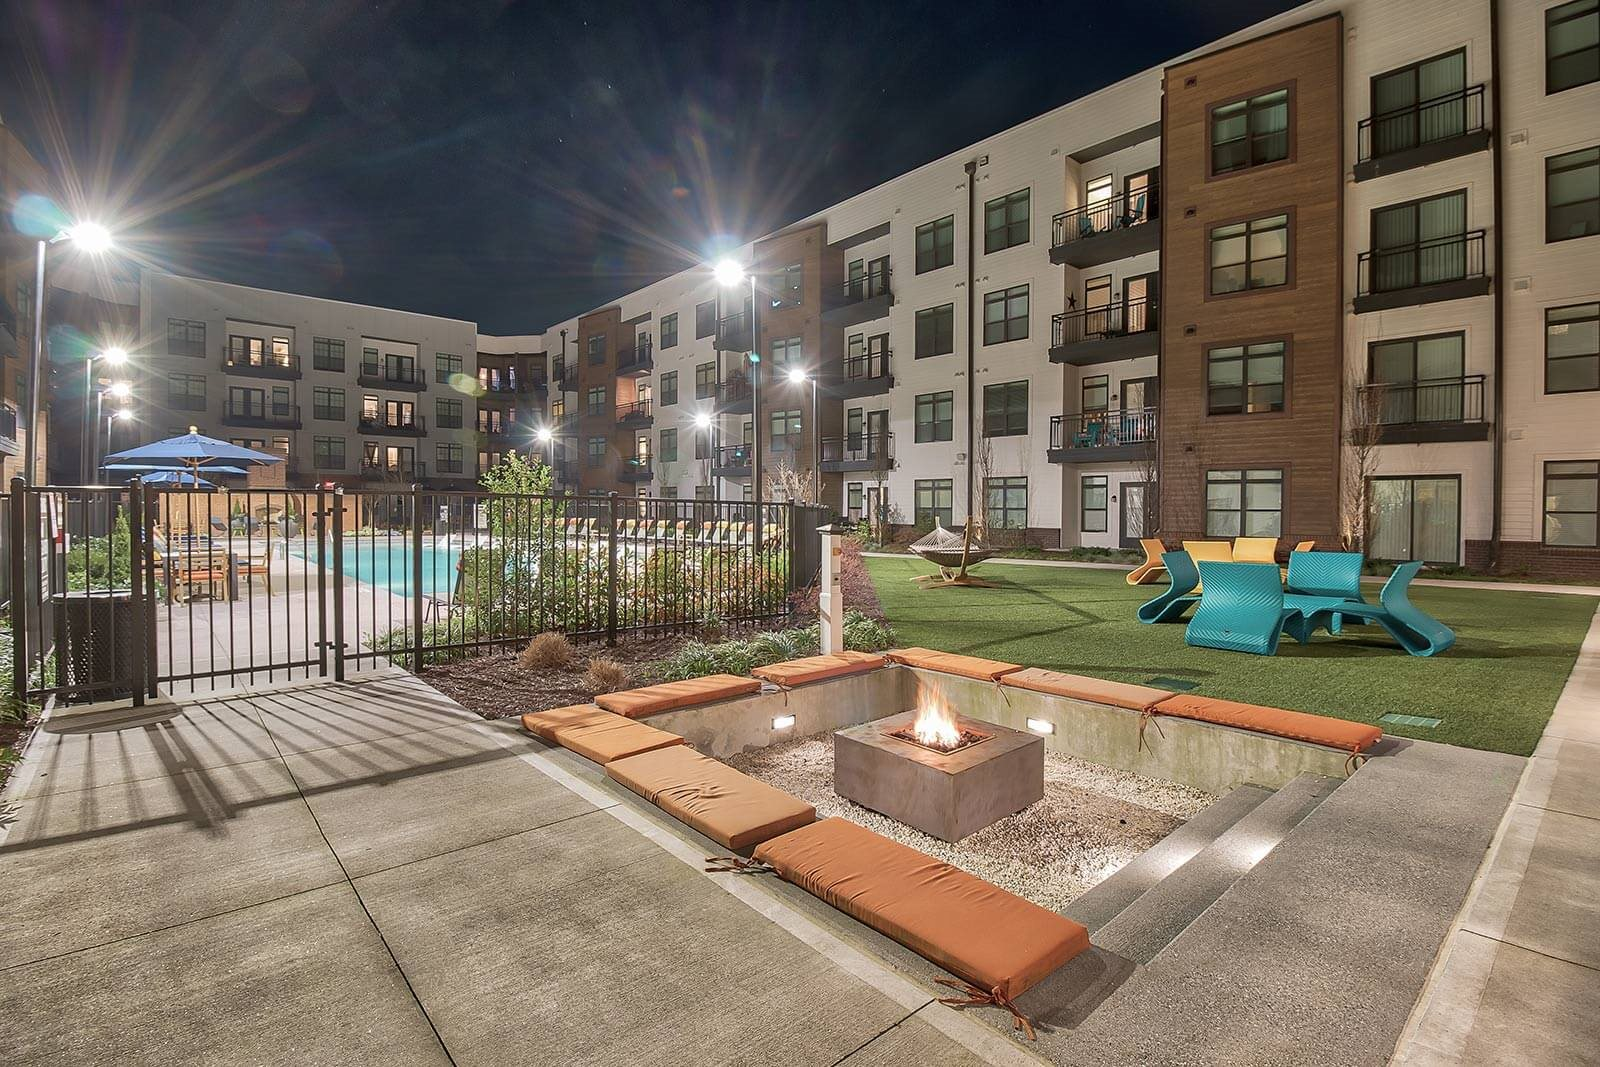 Landscaped Courtyard With Sunken Fire Pit at Windsor Parkview, Chamblee, 30341